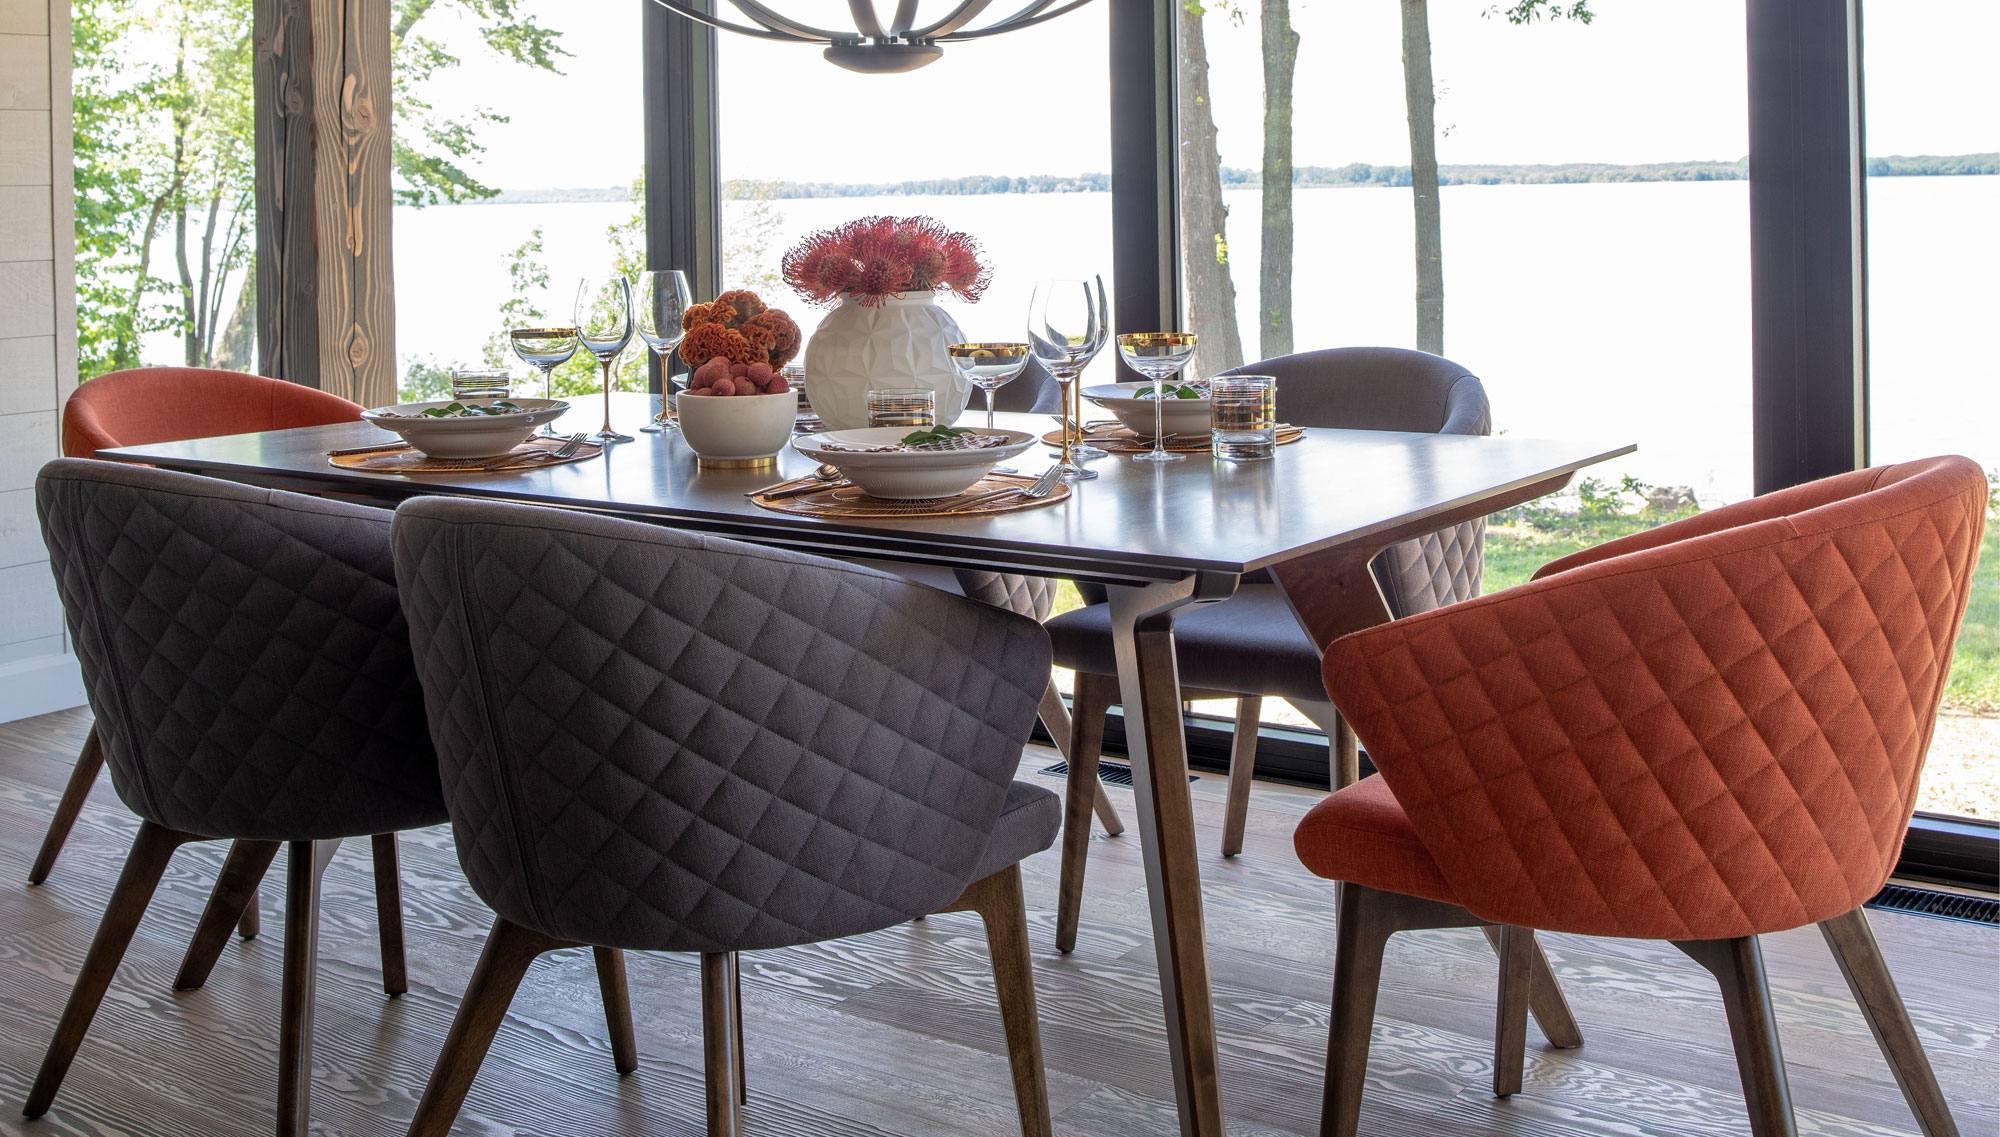 Most Up To Date Transitional 6 Seating Casual Dining Tables With Handcrafted In North America – Kitchen And Dining Room – Canadel (View 16 of 30)